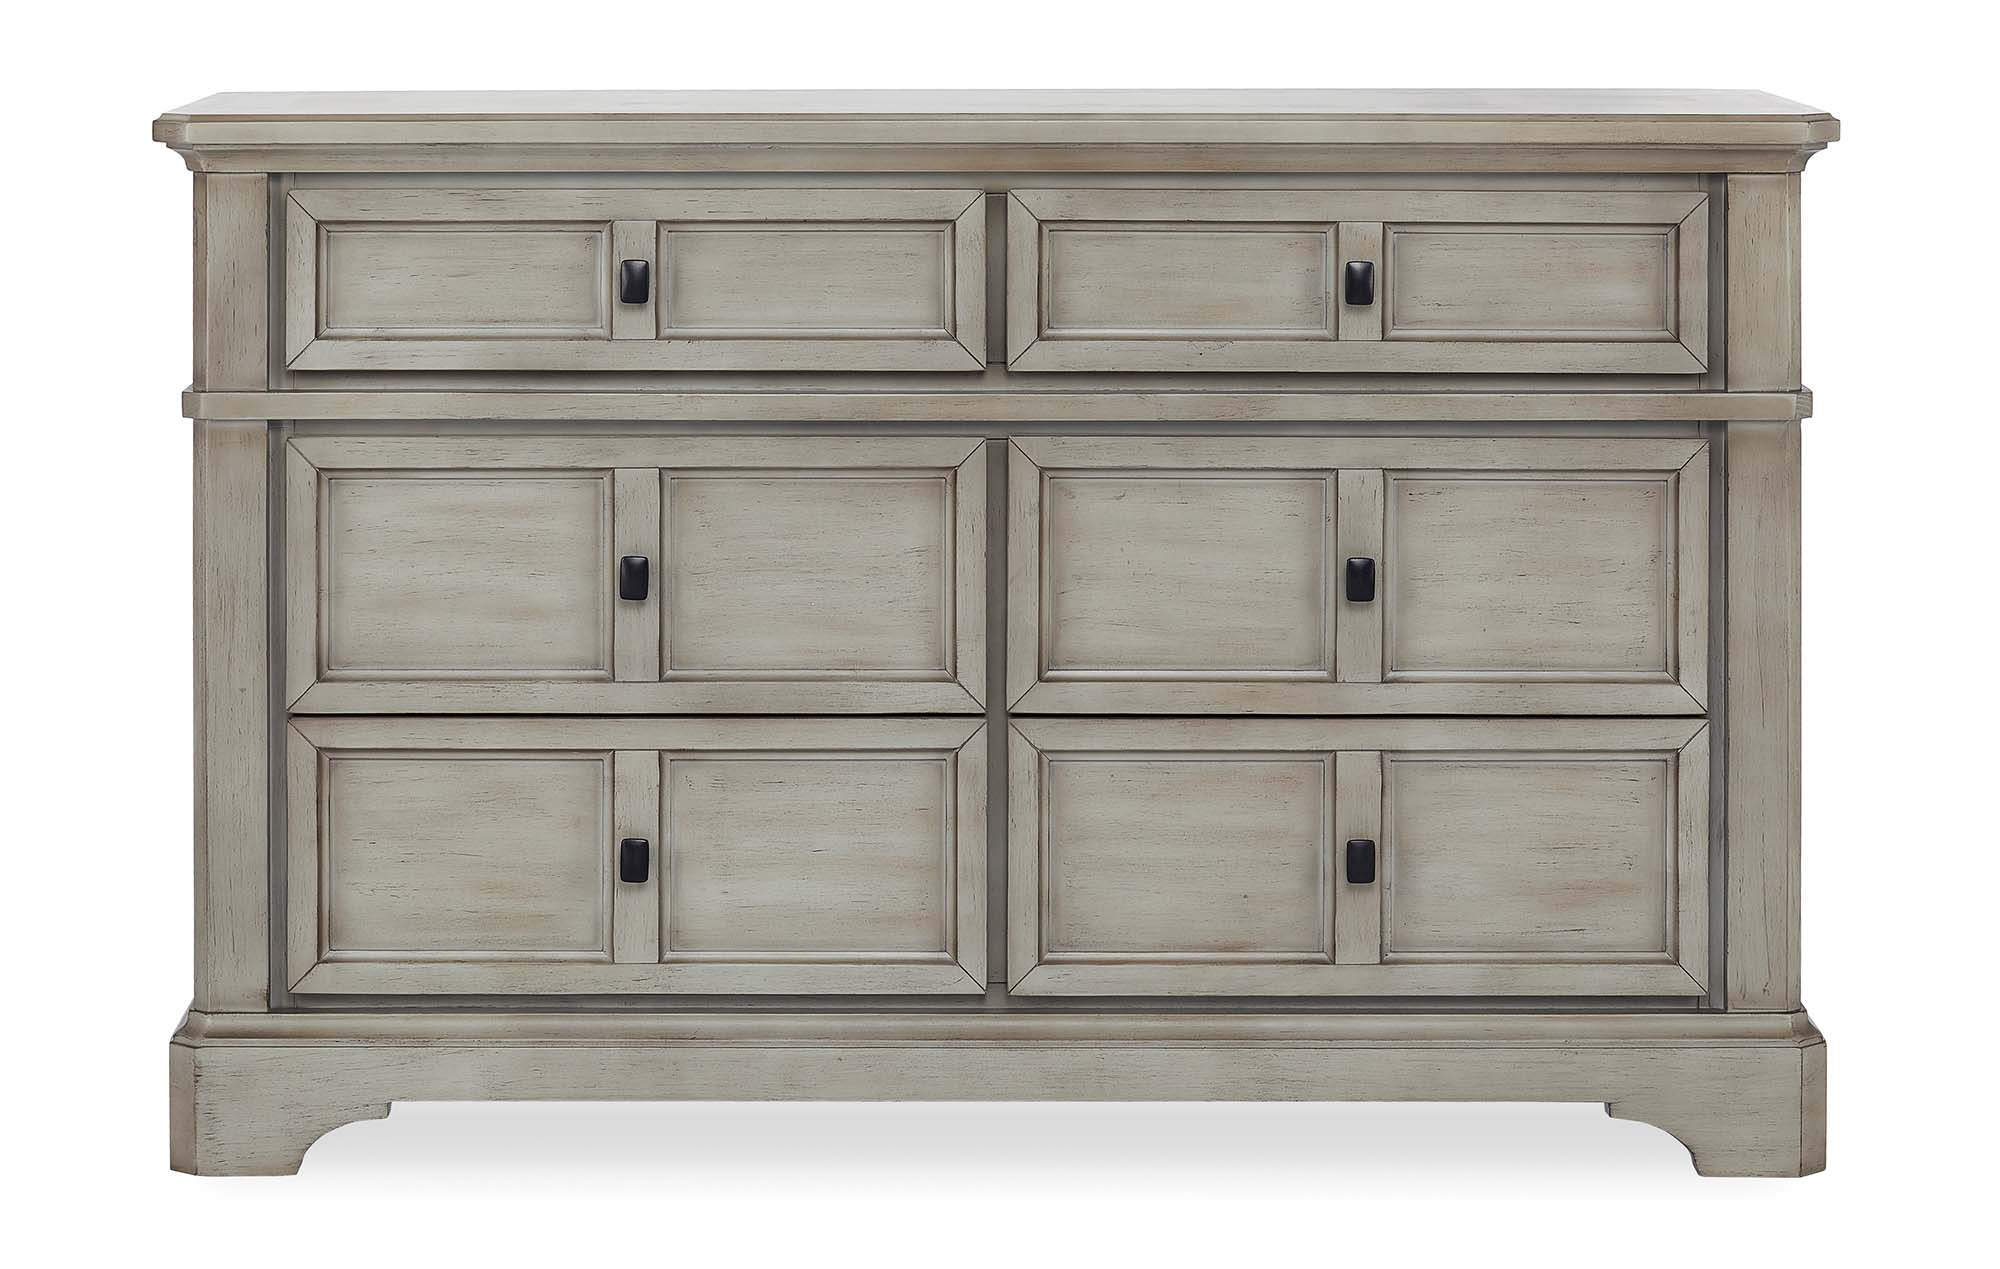 PROVENCE Double Dresser in Ash Grey